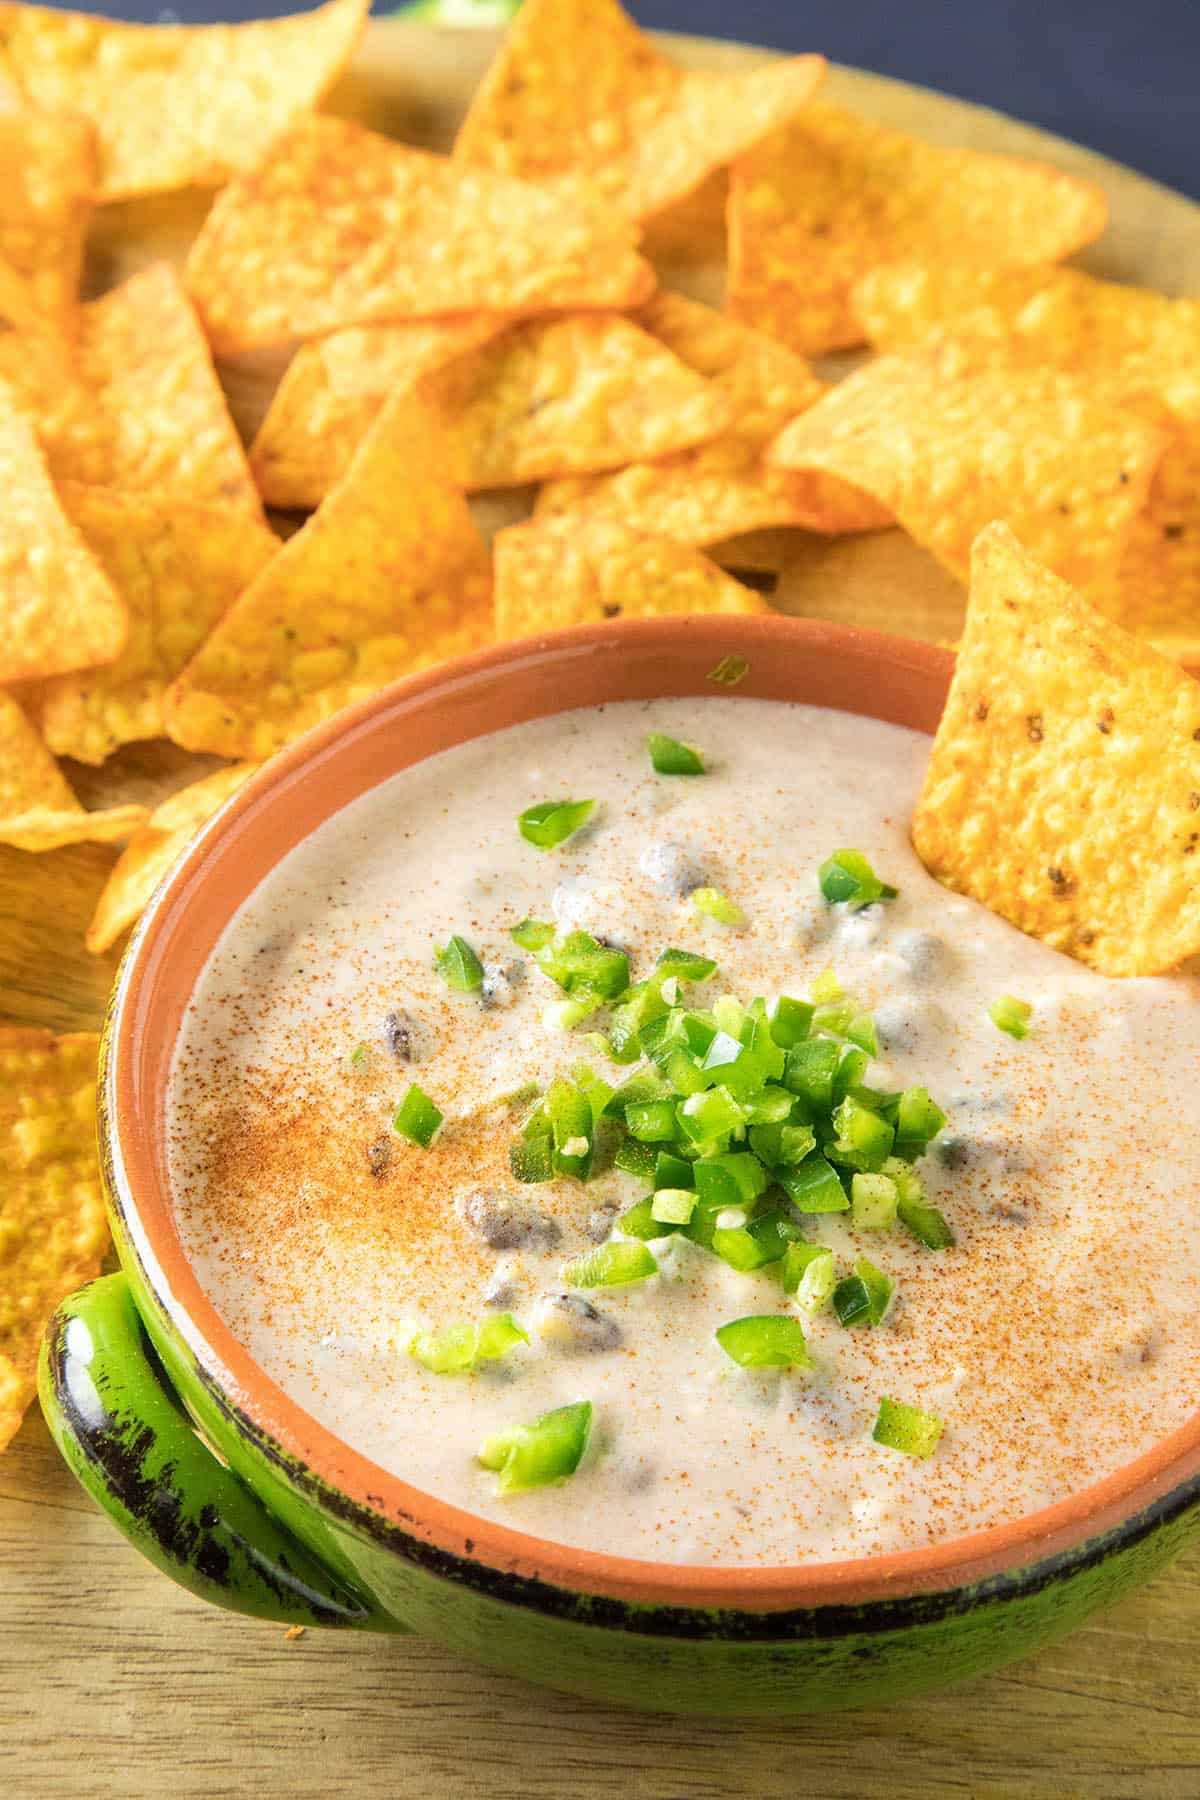 Southwest-Style Cheese Dip